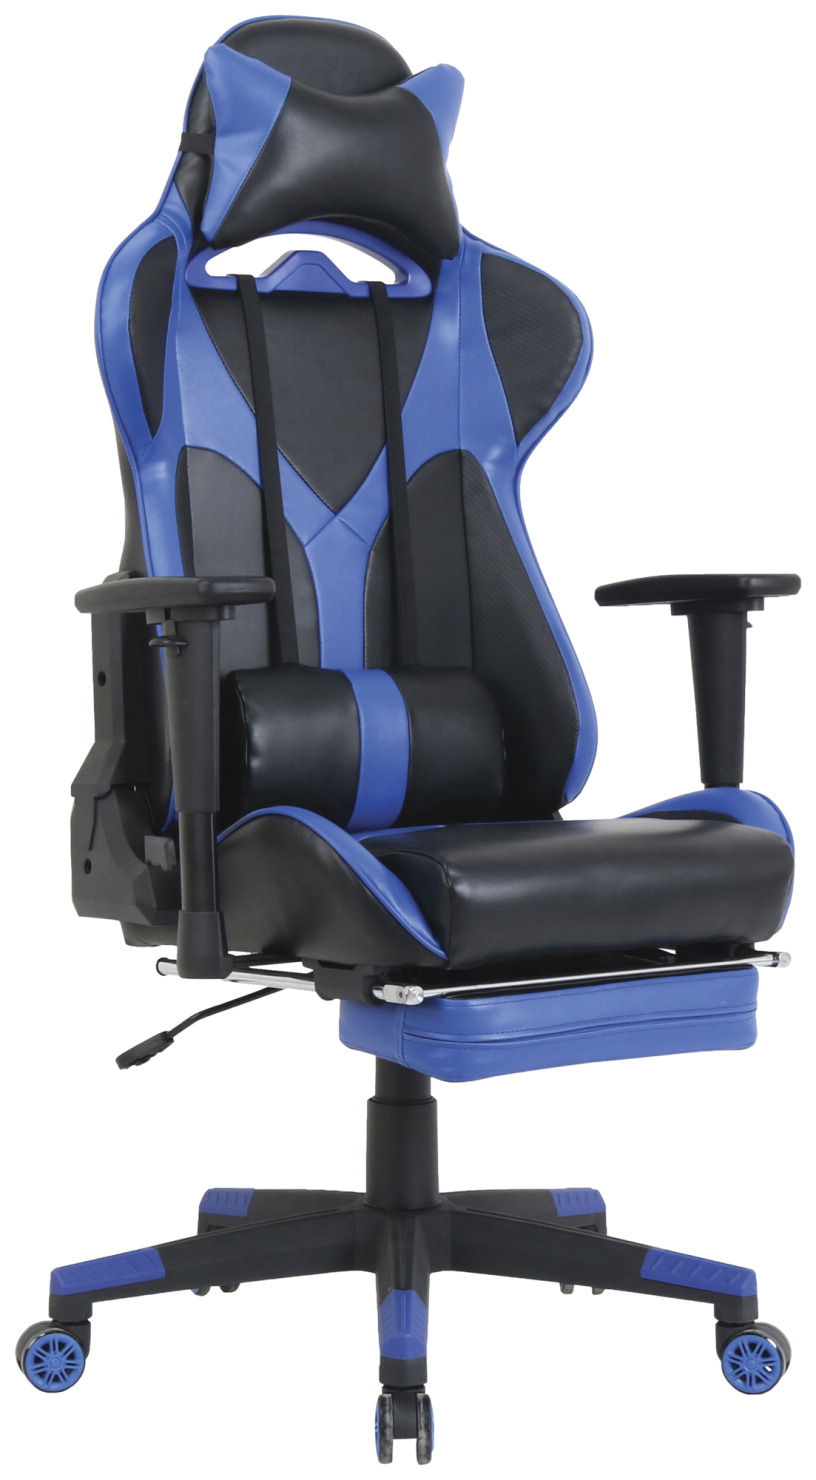 Marvelous Classroom Select Foldable Footrest High Back Gaming Chair Chair Gaming High Back 20 9 10Wx44 3 5Lx52H Be Bk Bralicious Painted Fabric Chair Ideas Braliciousco